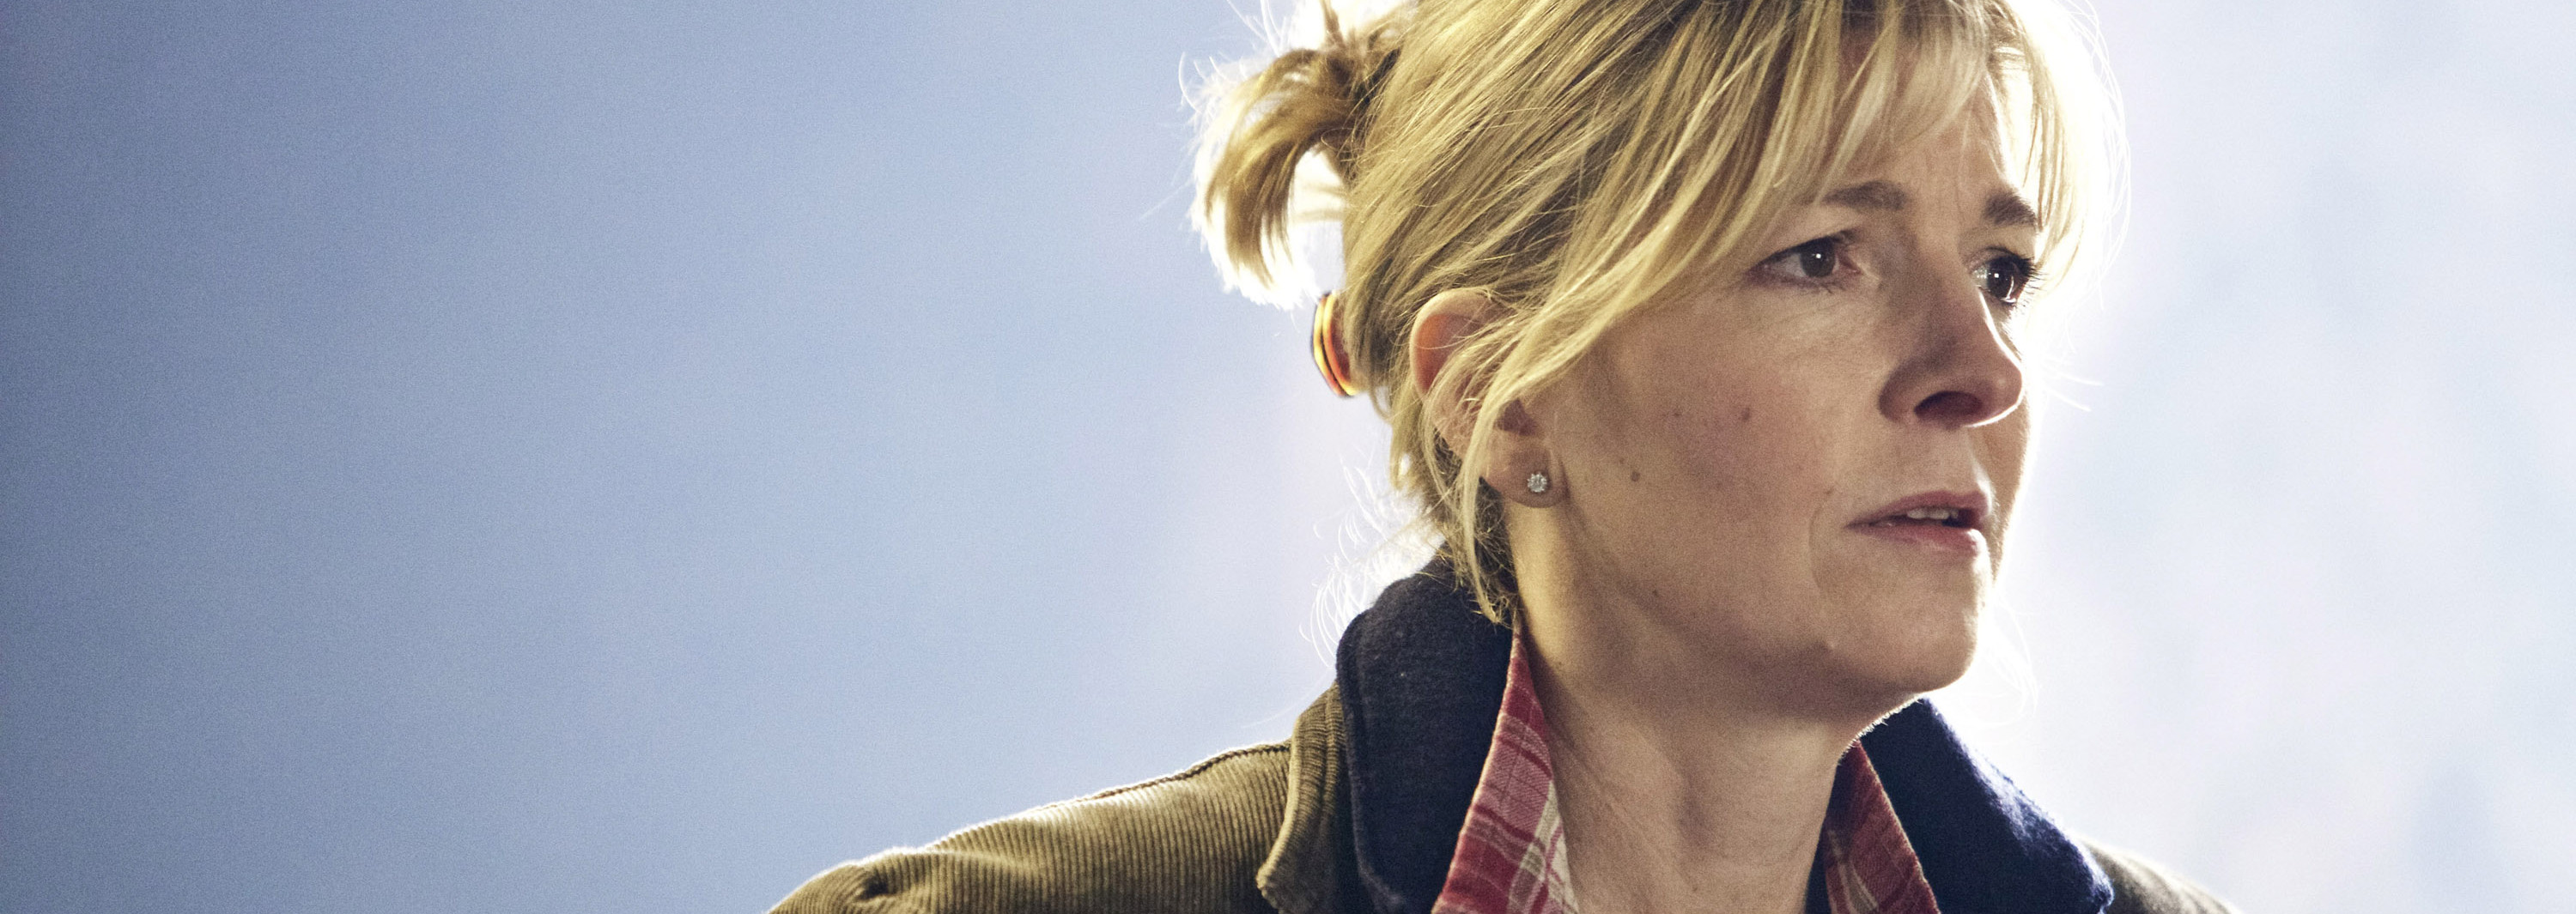 Jemma Redgrave as Kate Stewart – Doctor Who HD Captures & Stills